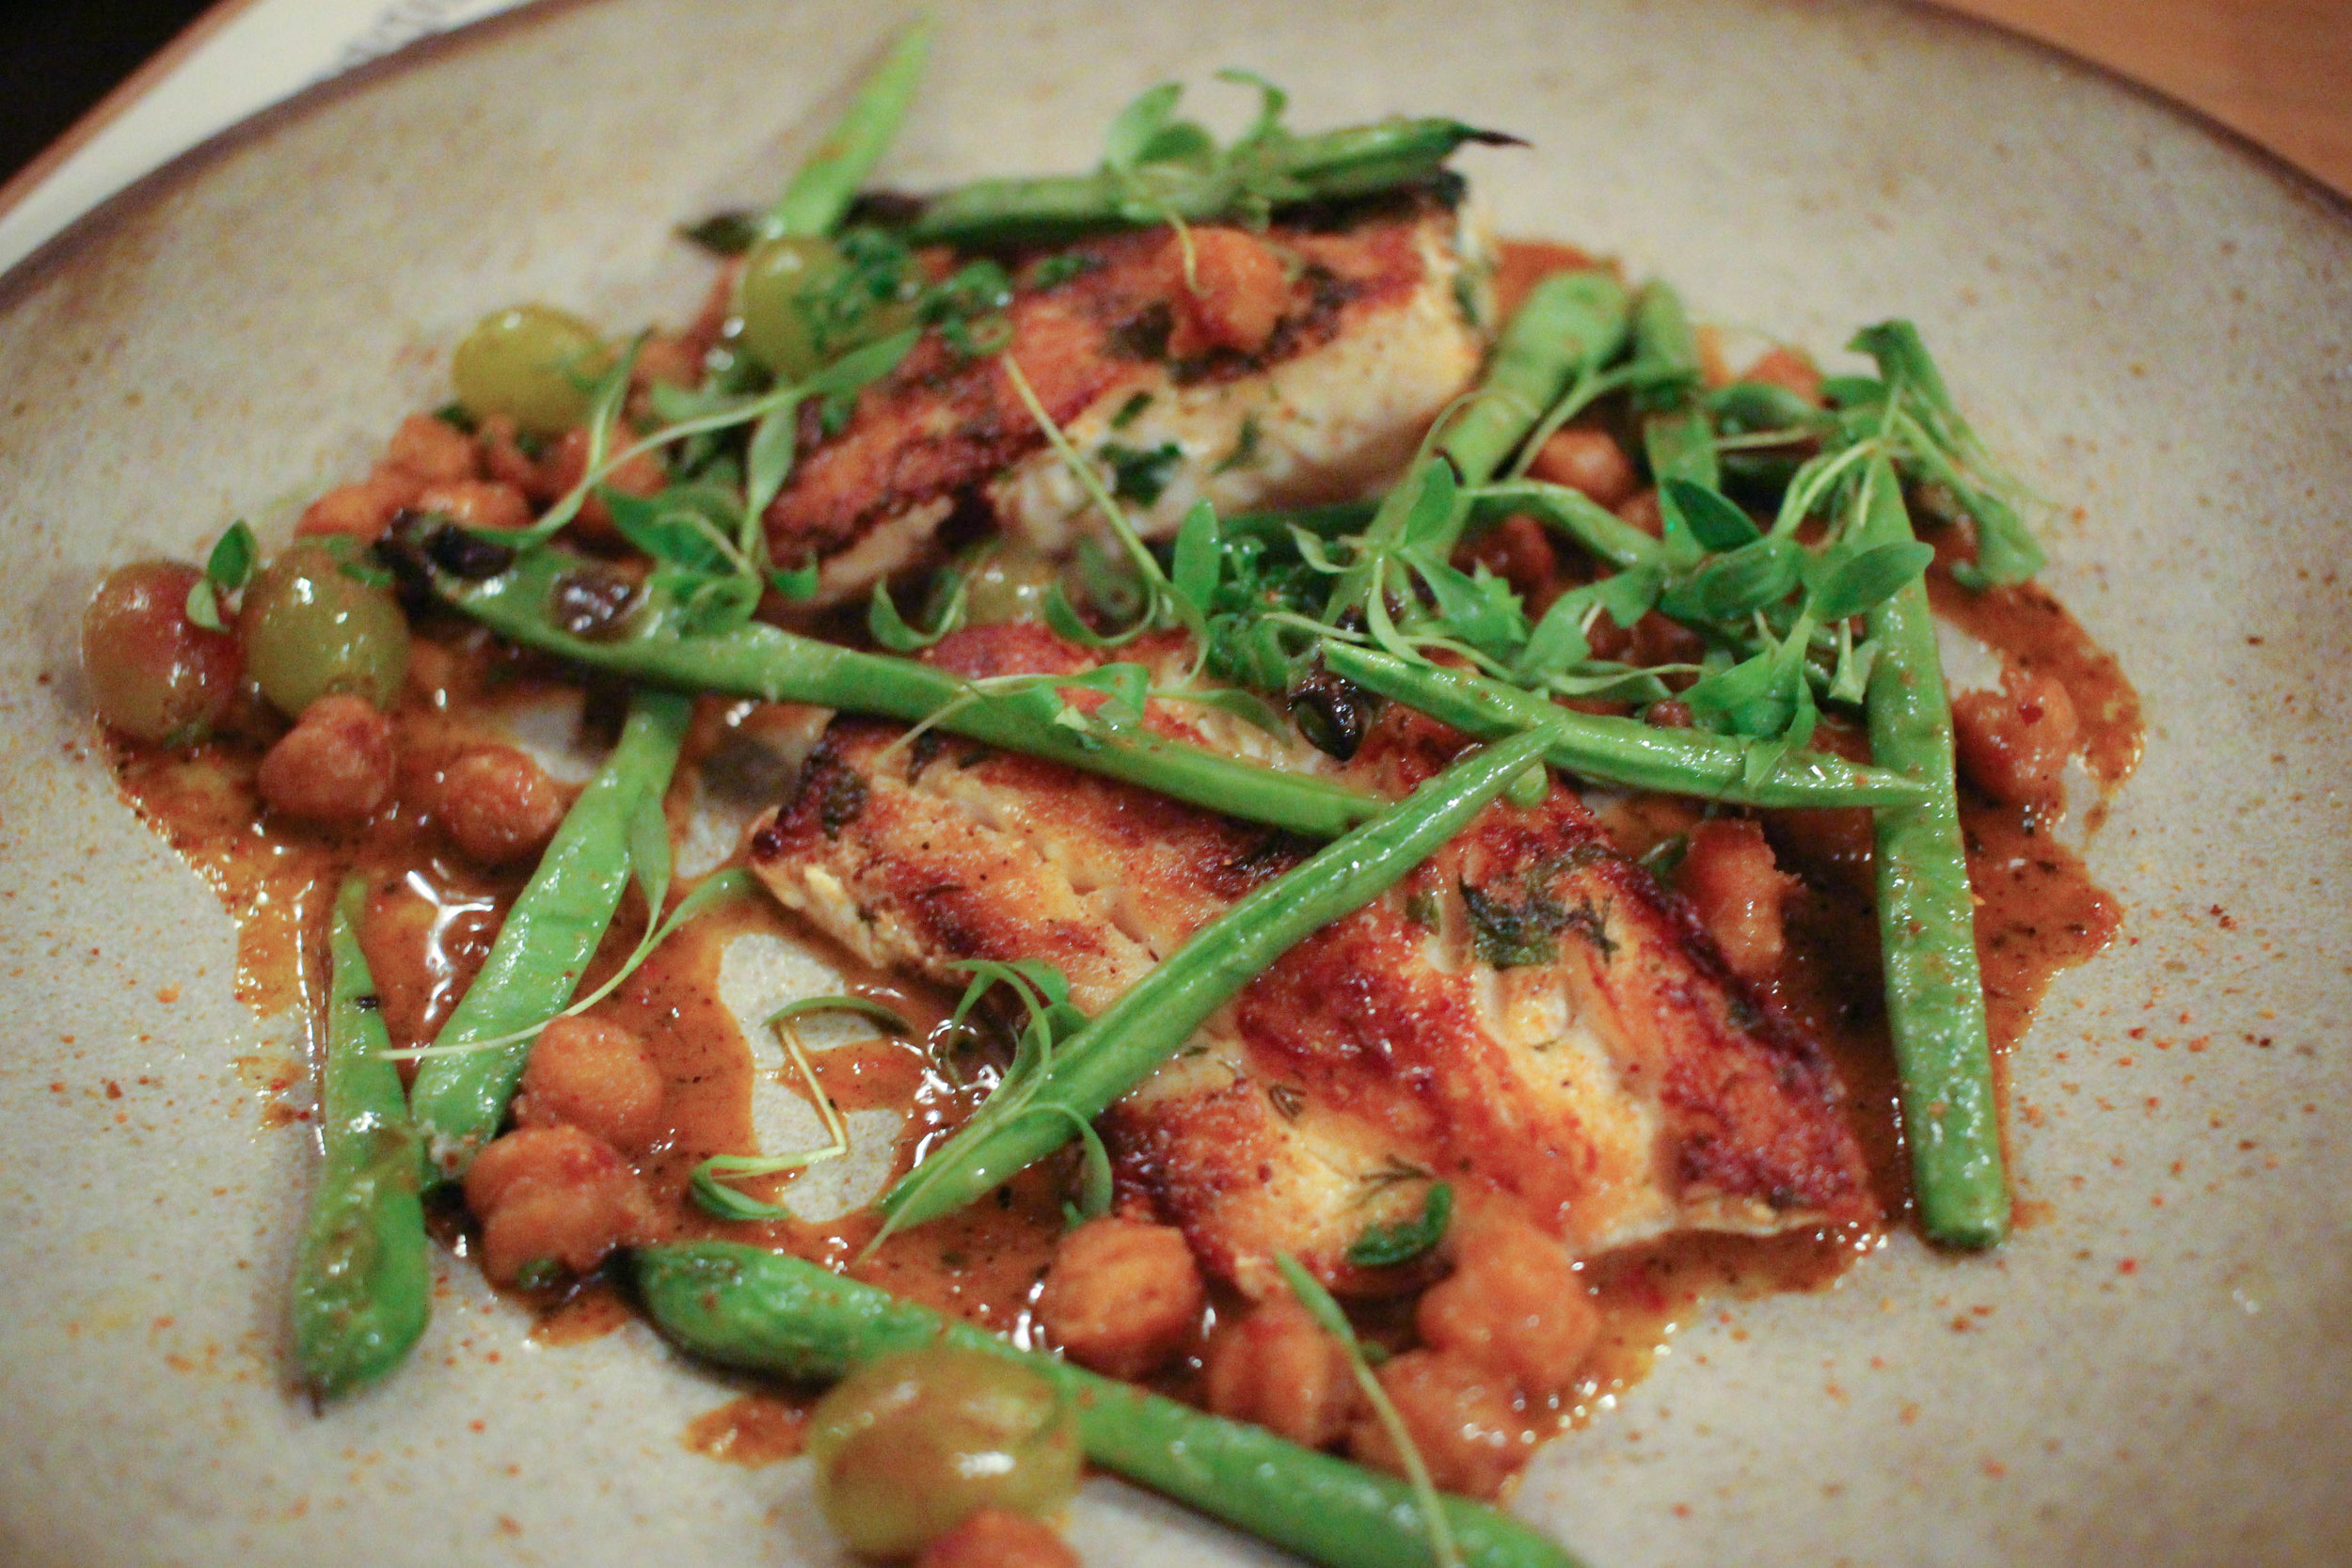 Grilled Monterrey fish with green beans, chickpeas, and roasted olives